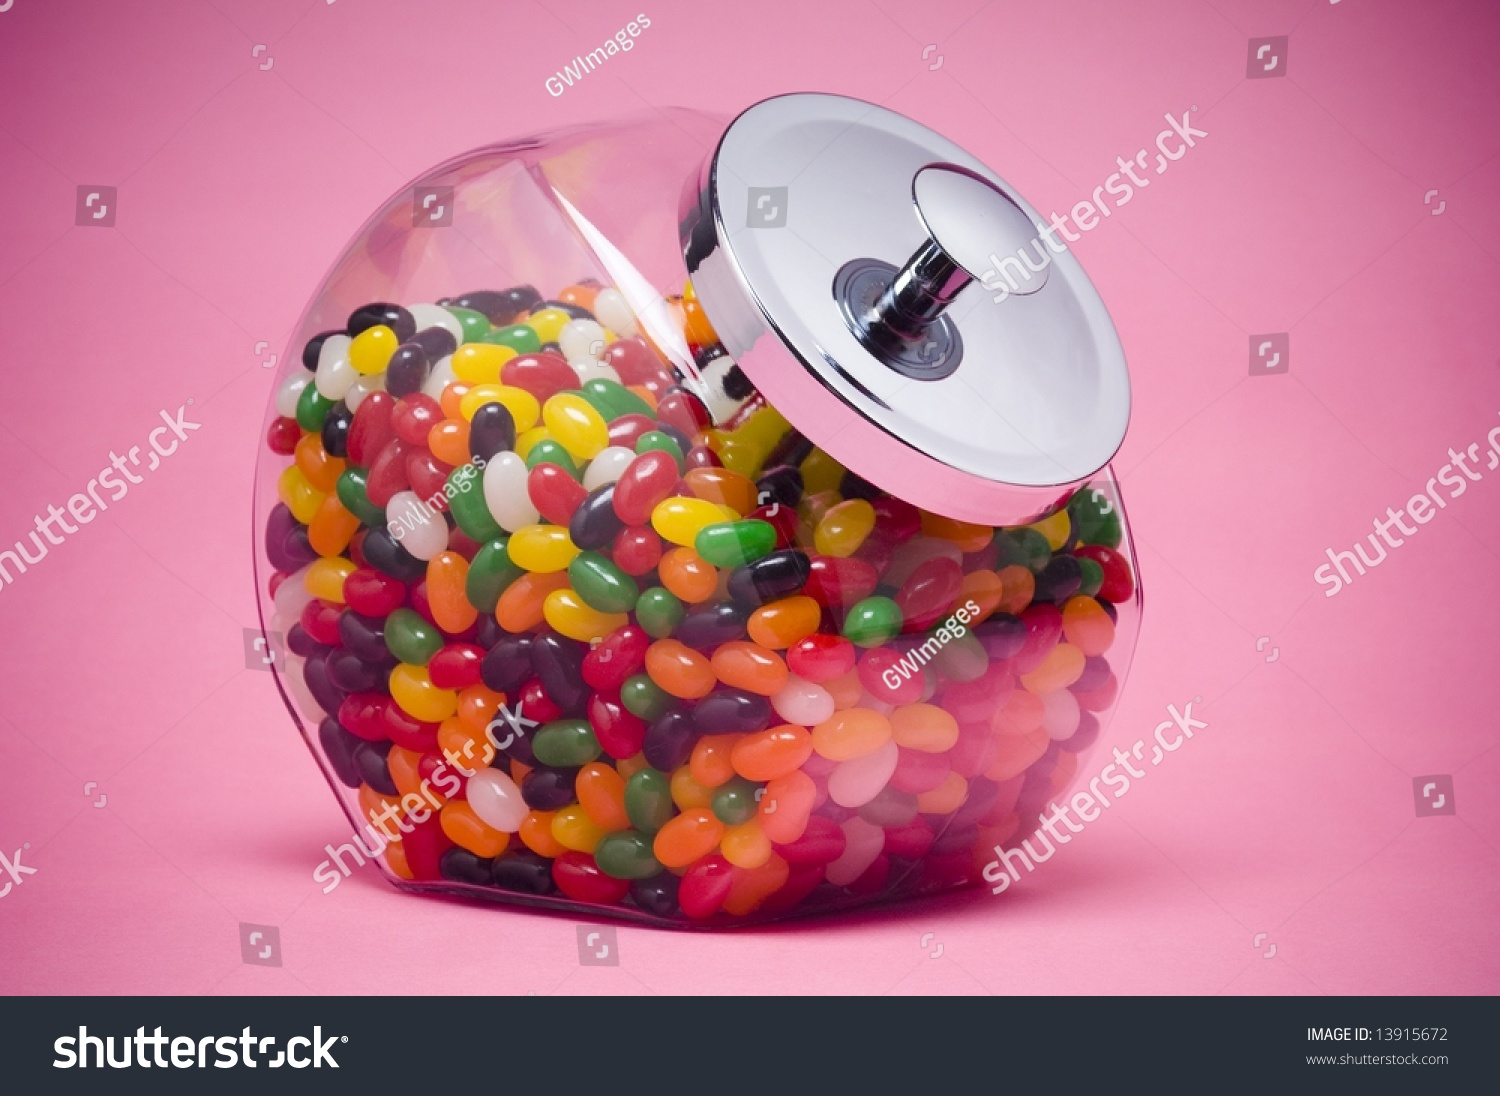 Jelly Beans Glass Container Stock Photo (Edit Now) 13915672 ...